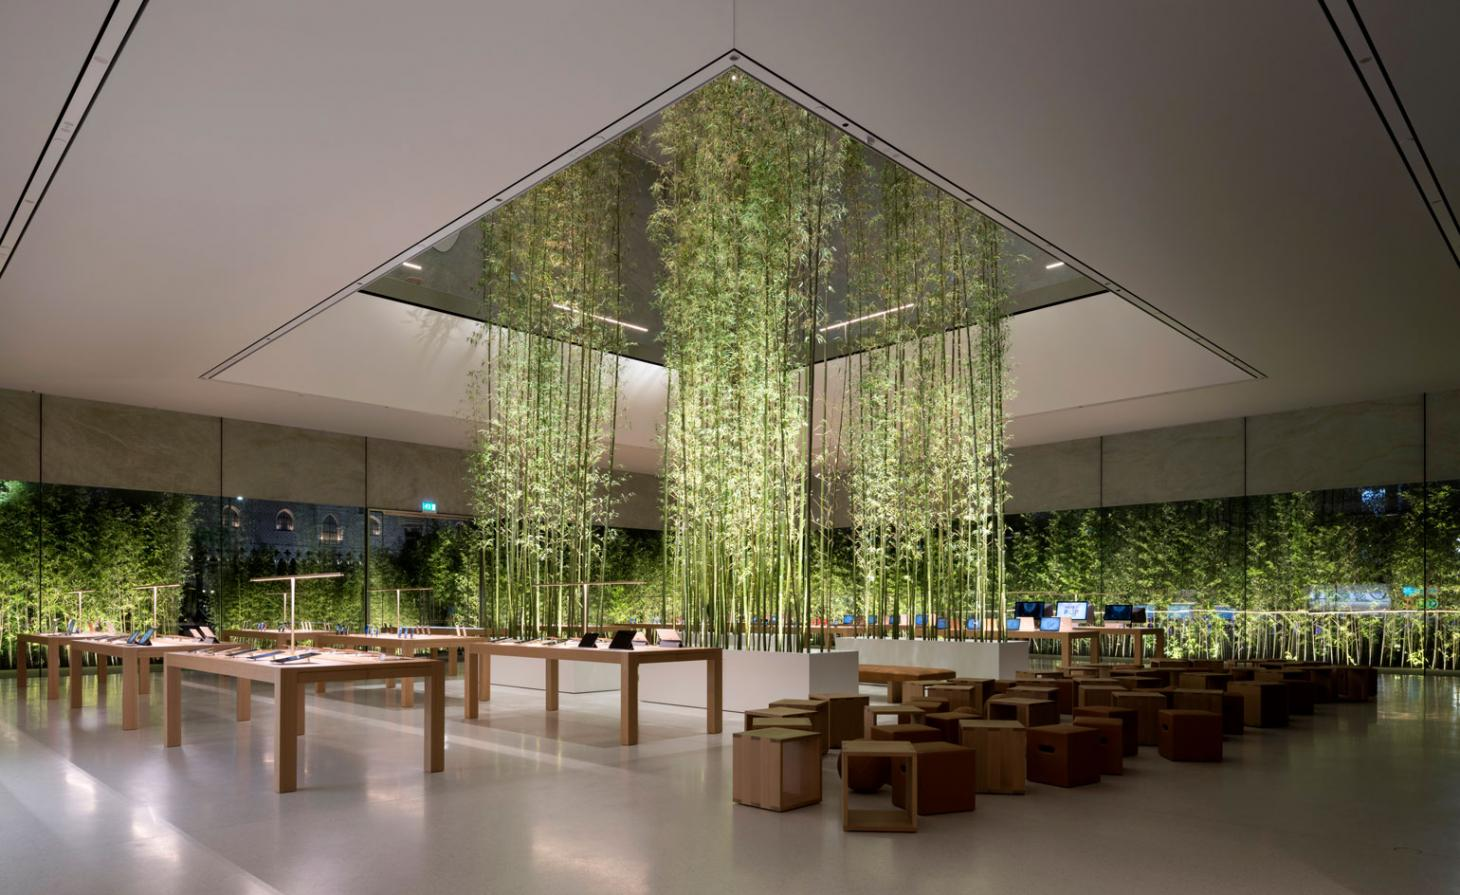 Cubic light wells are reinforced by smaller lights, greeted by dense bamboo plantings